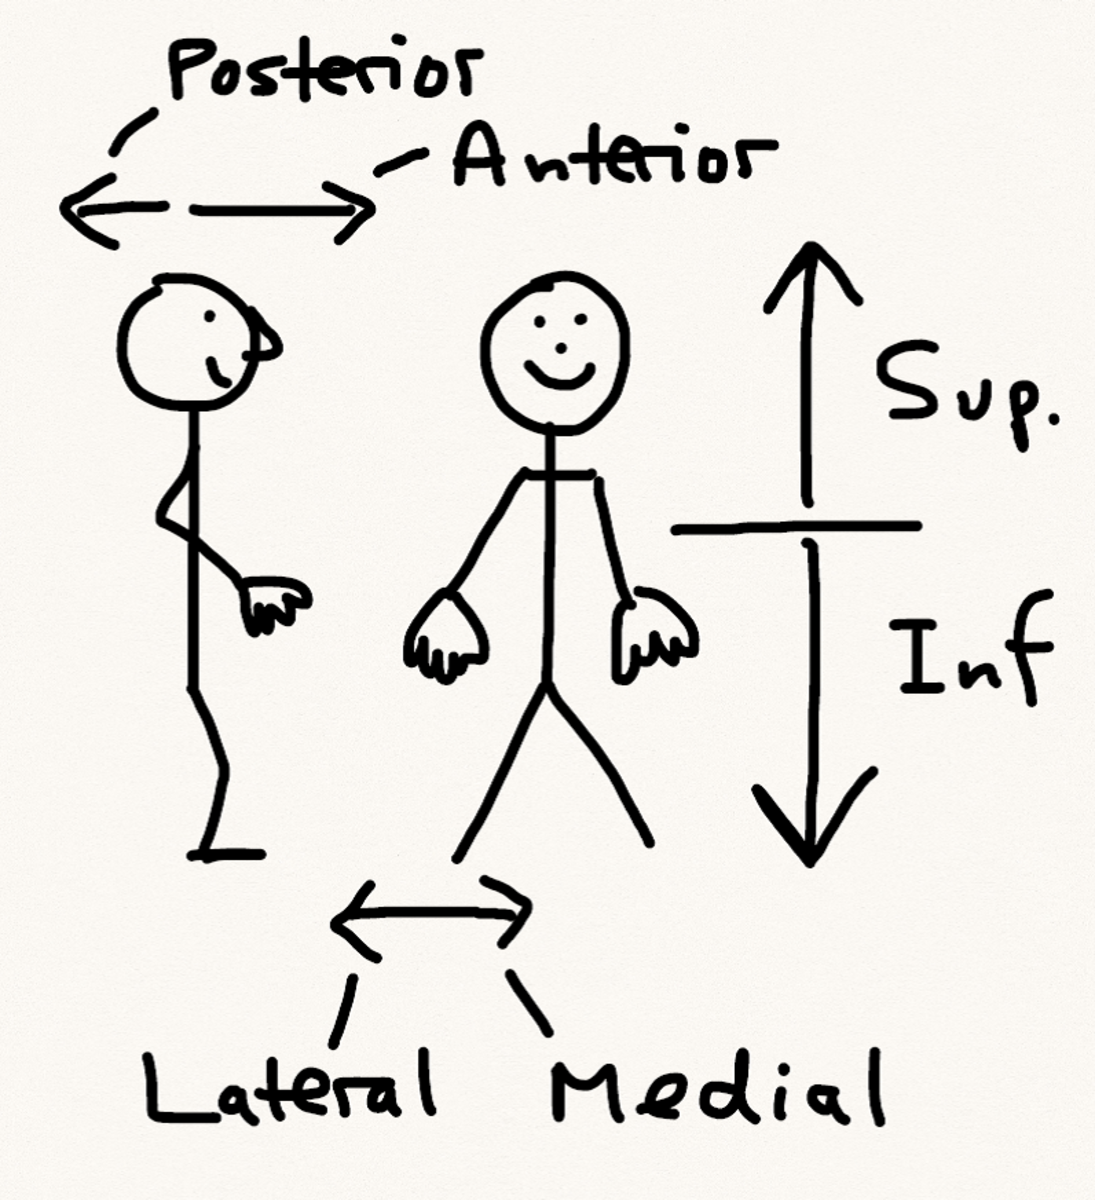 Anatomical terminology schematic